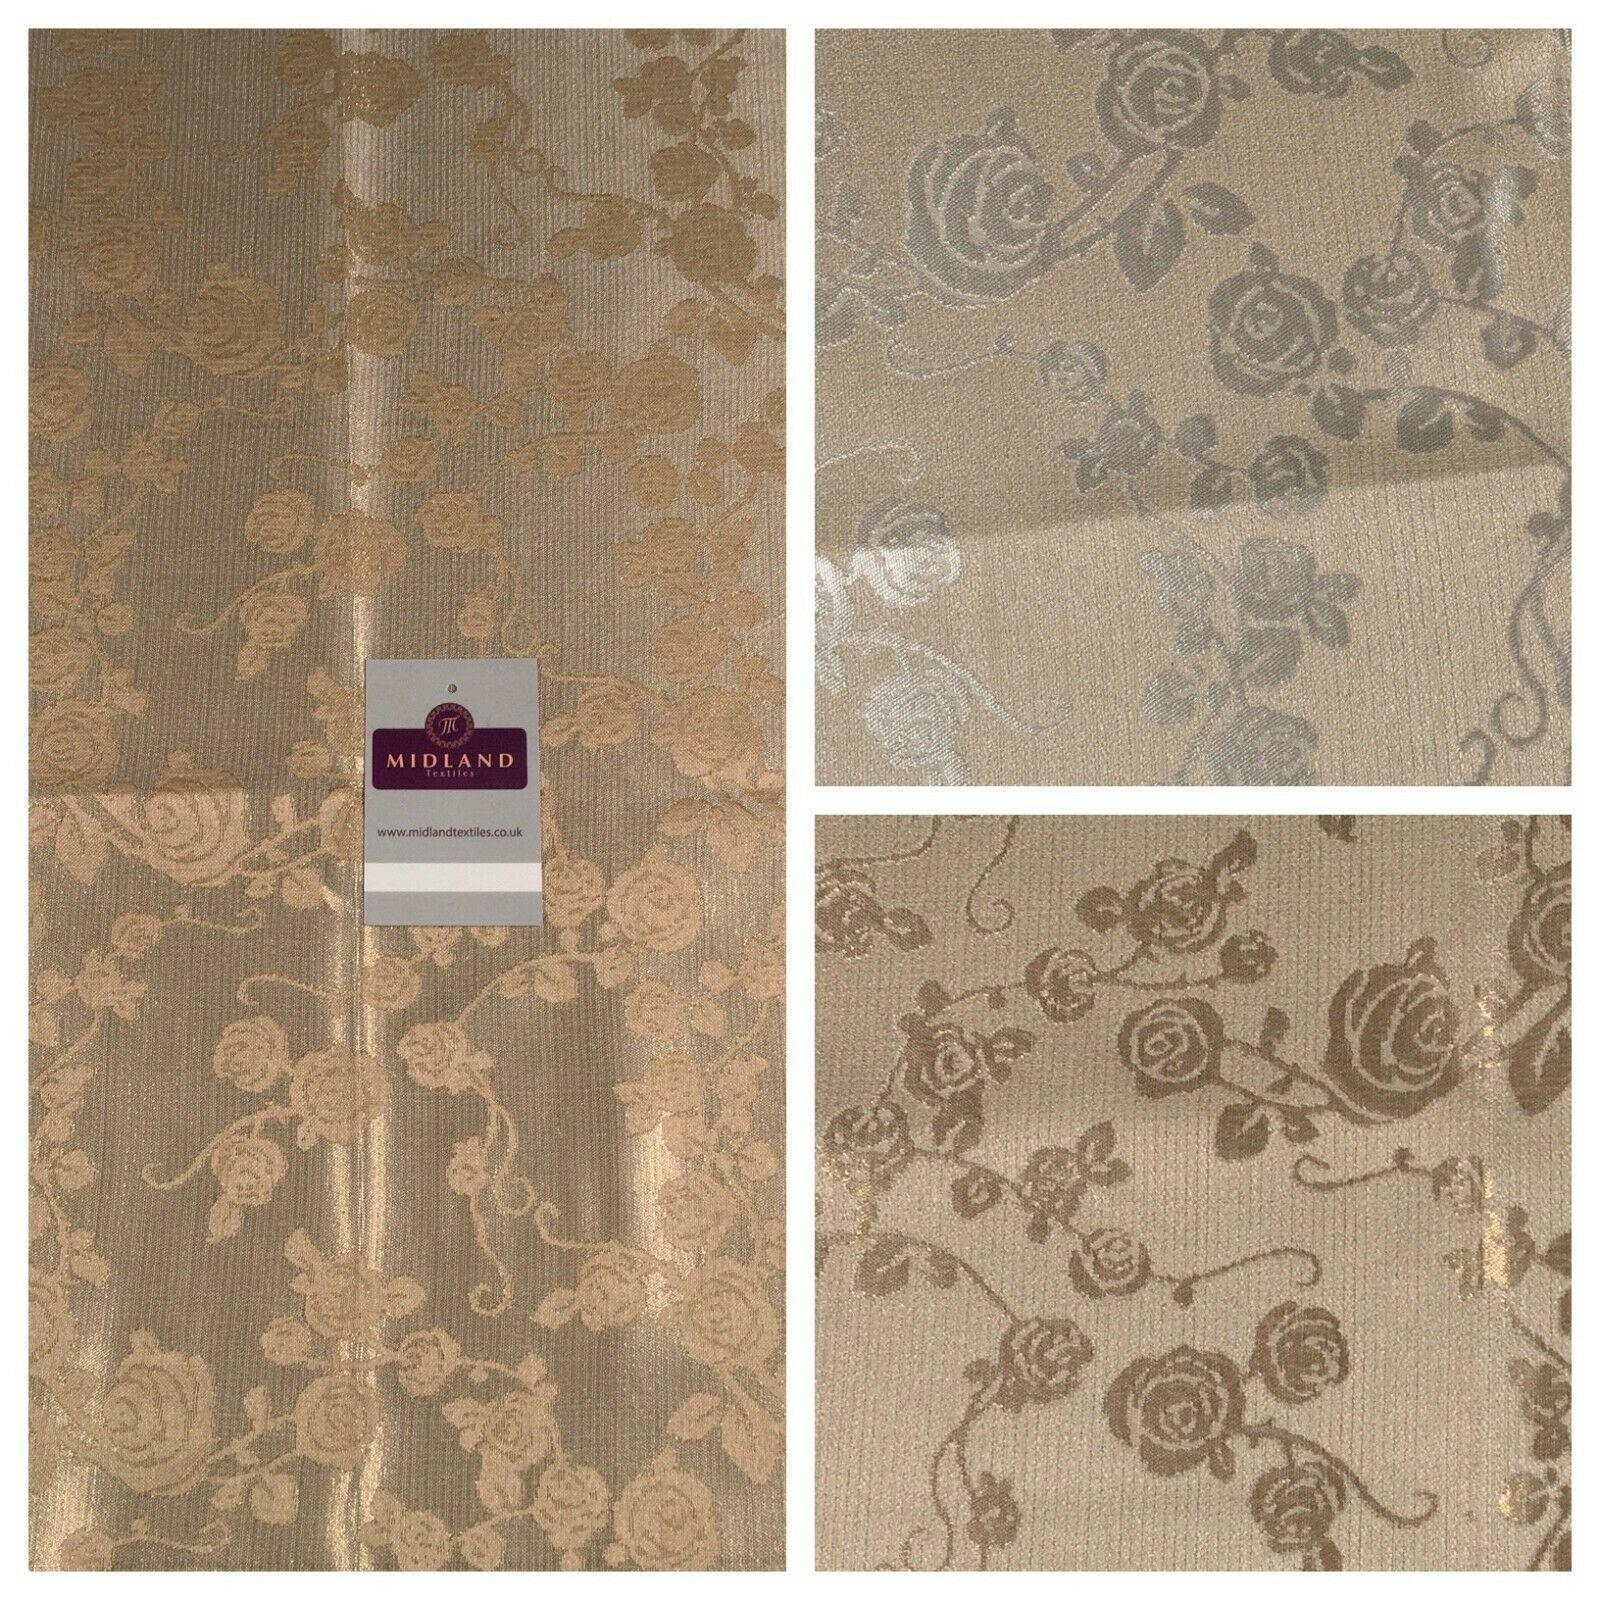 Bridal Brocade Floral Metallic Wedding Fabric 140 cm MK1365 Mtex